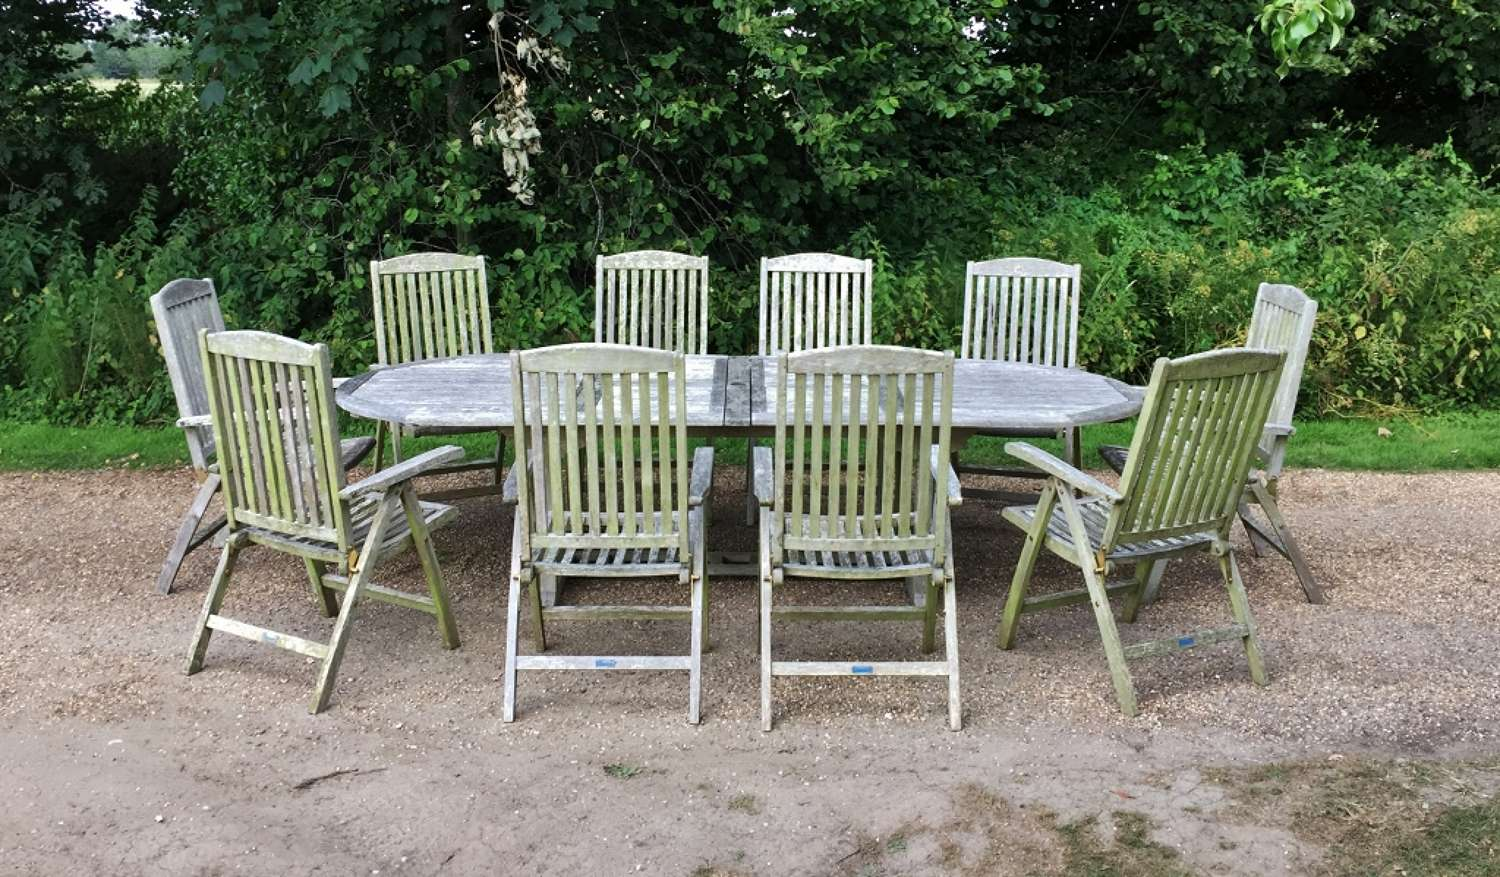 Seating Set with 10 Folding Chairs